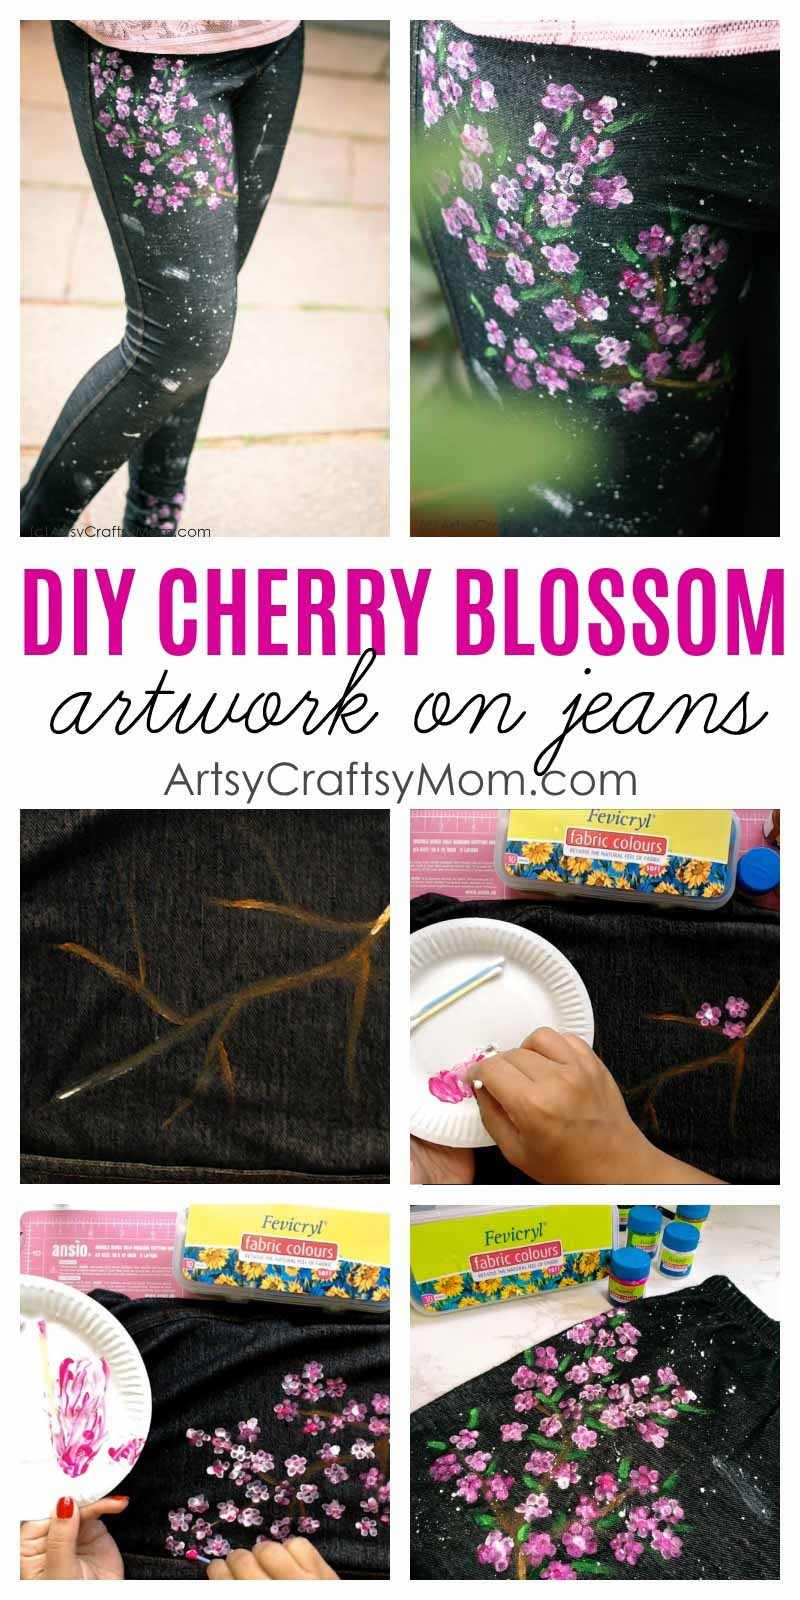 DIY Cherry Blossom Art on Jeans. Transform boring jeans into a gorgeous fashion statement that your teen can flaunt just in time for back to school.